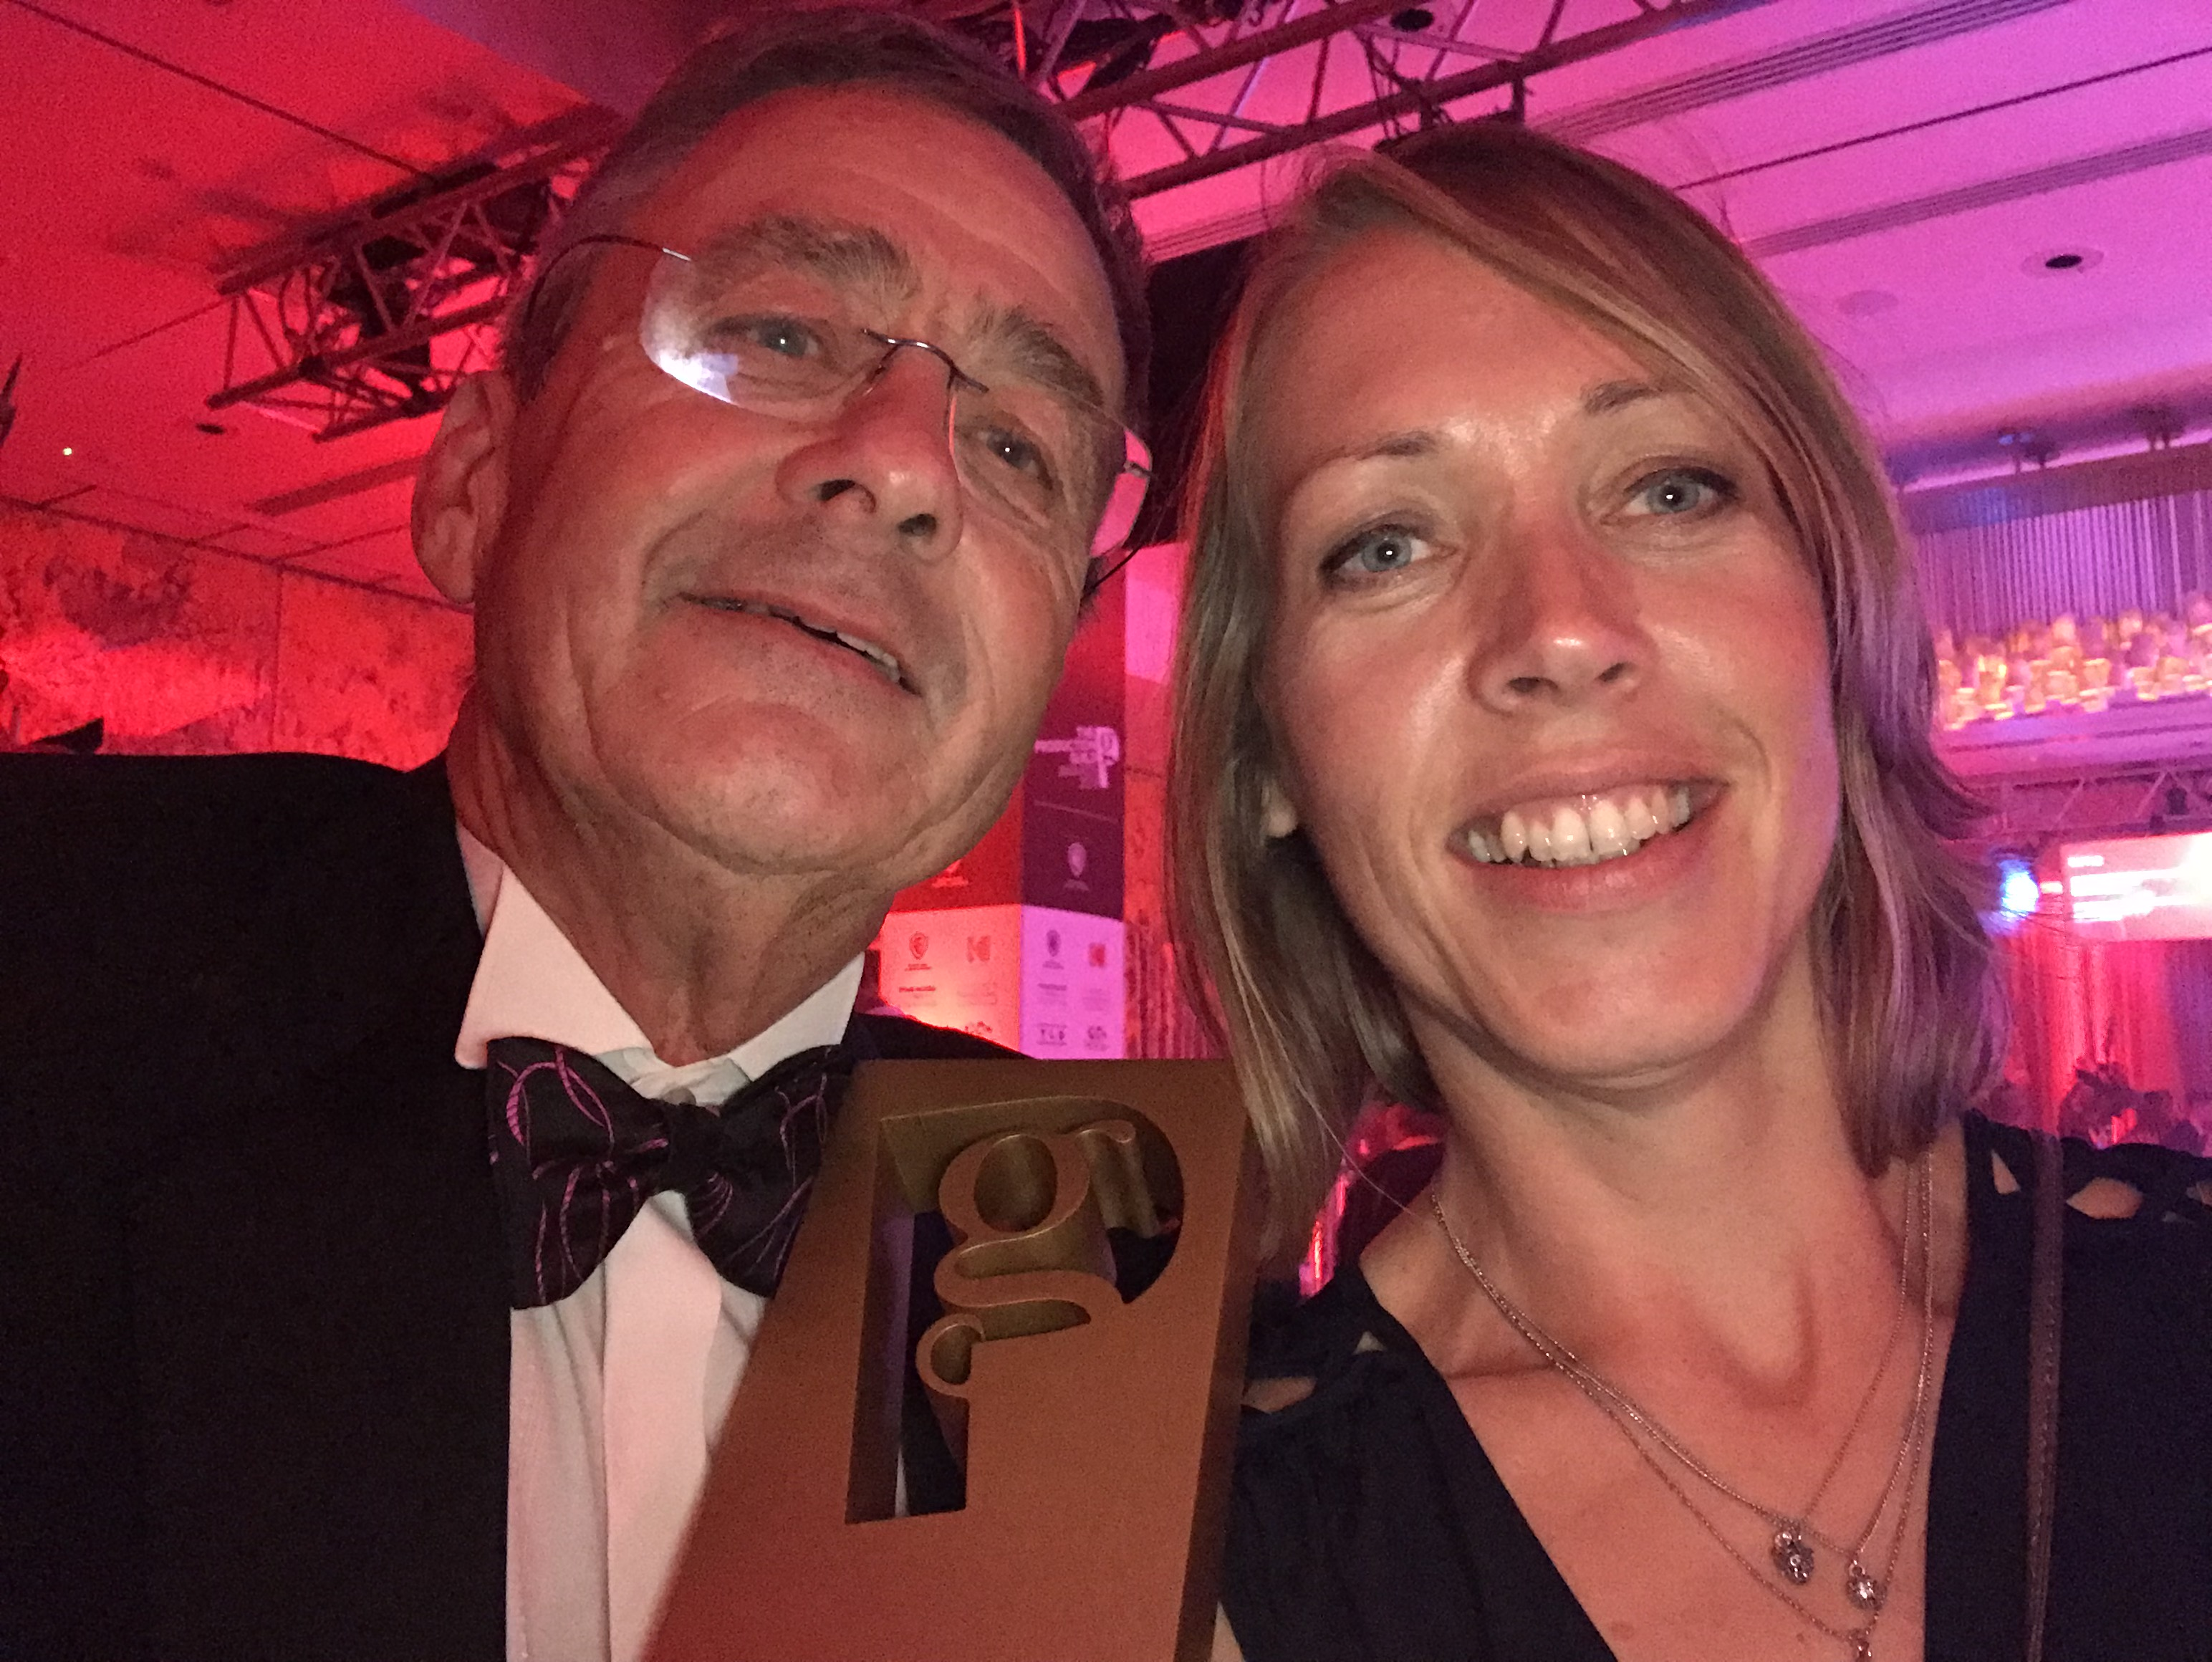 A close up of Gareth holding his award and smiling, with Chloe Chesterton